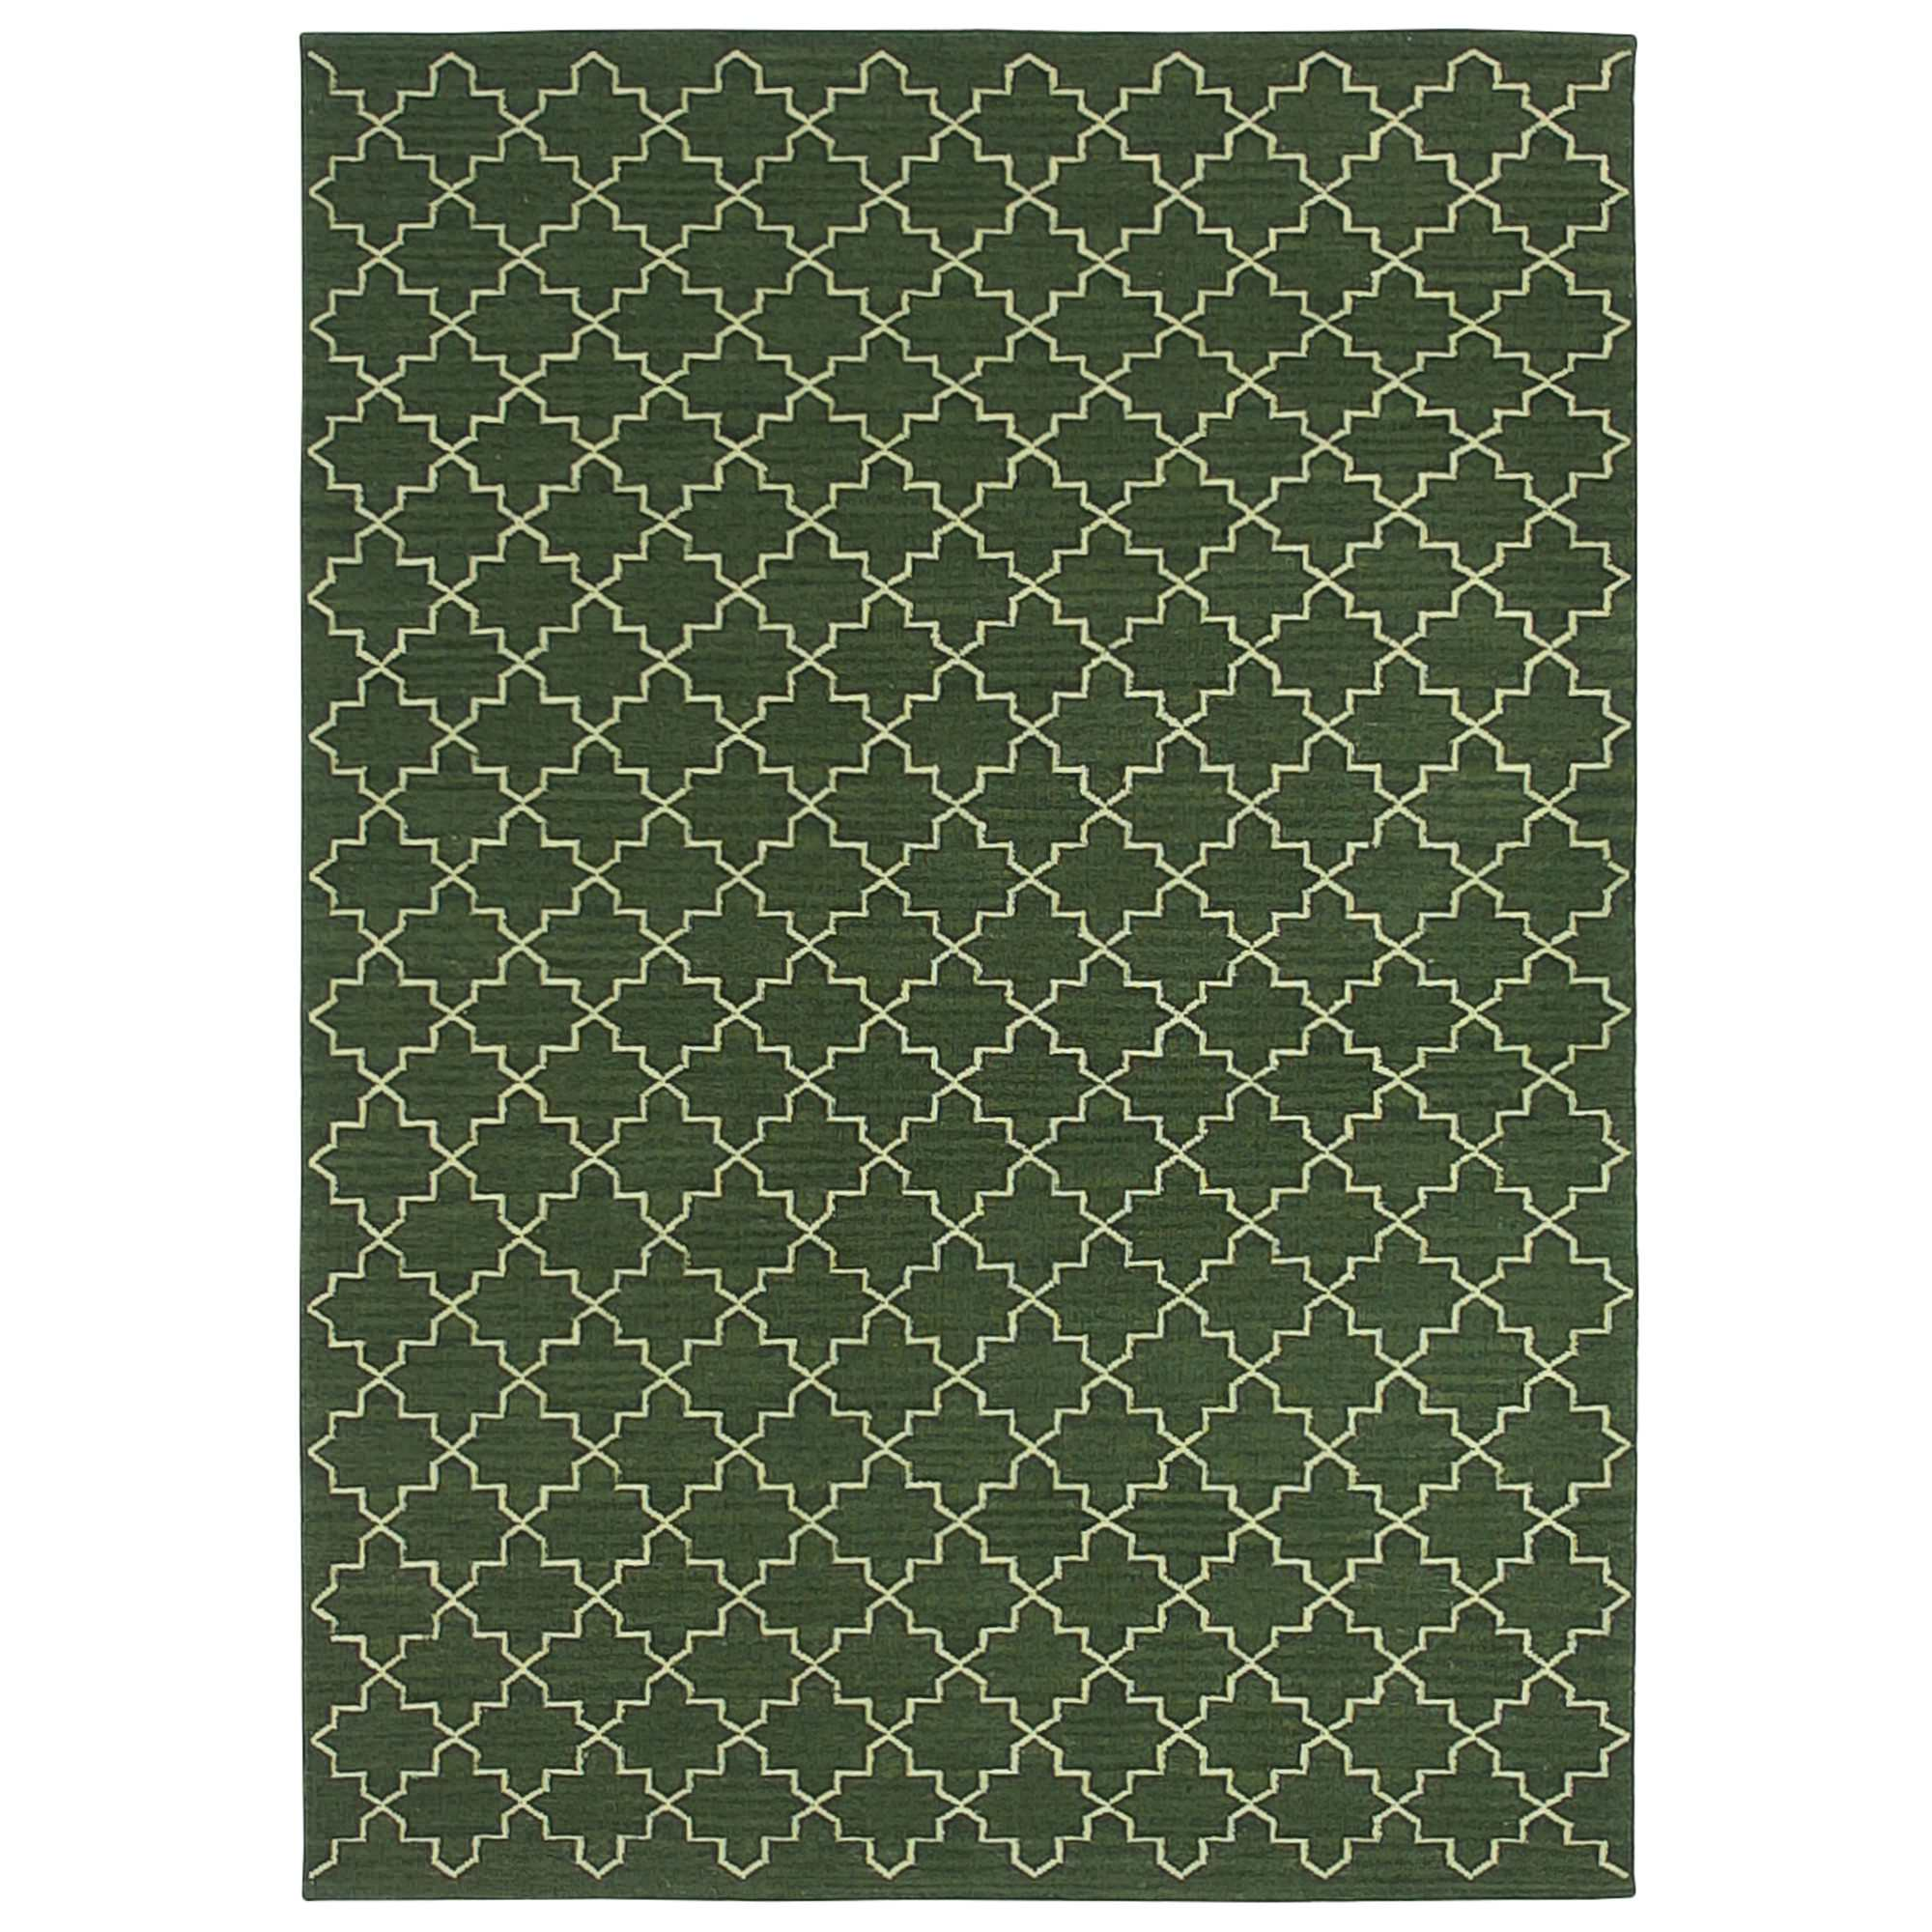 Moroc Handwoven Wool Rug, 200x300cm, Forest Green